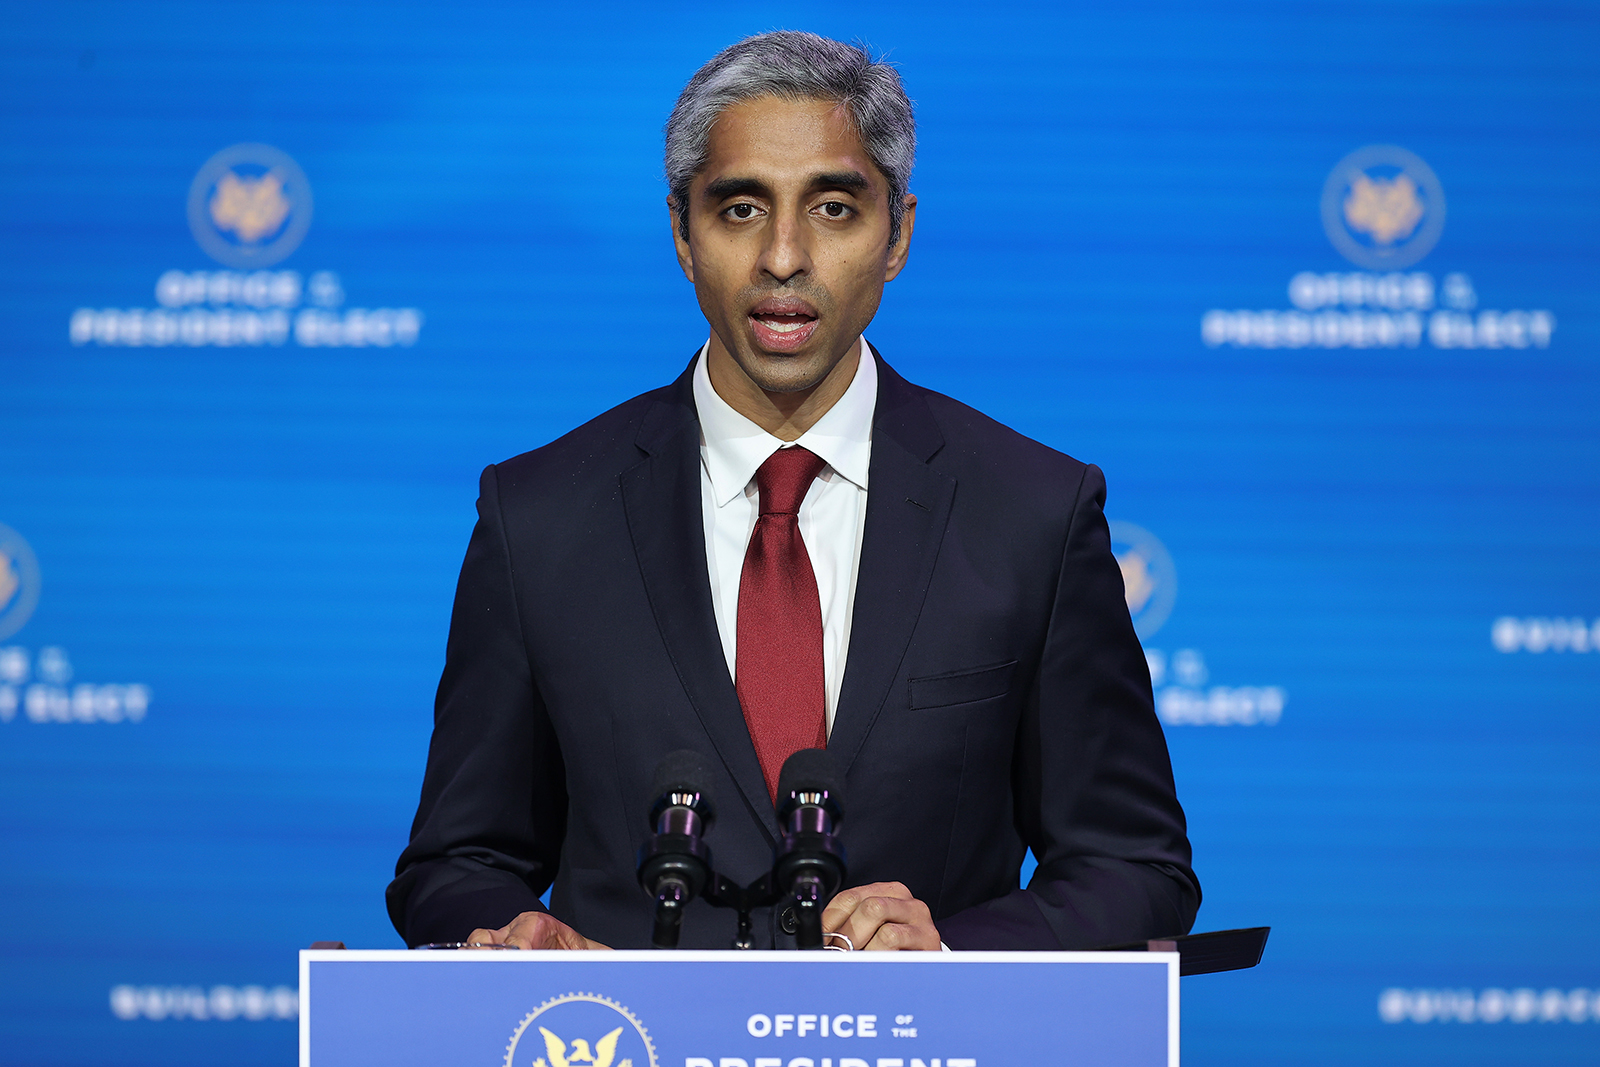 Dr. Vivek Murthy speaks during a news conference at the Queen Theater in Wilmington, Delaware, on December 08.